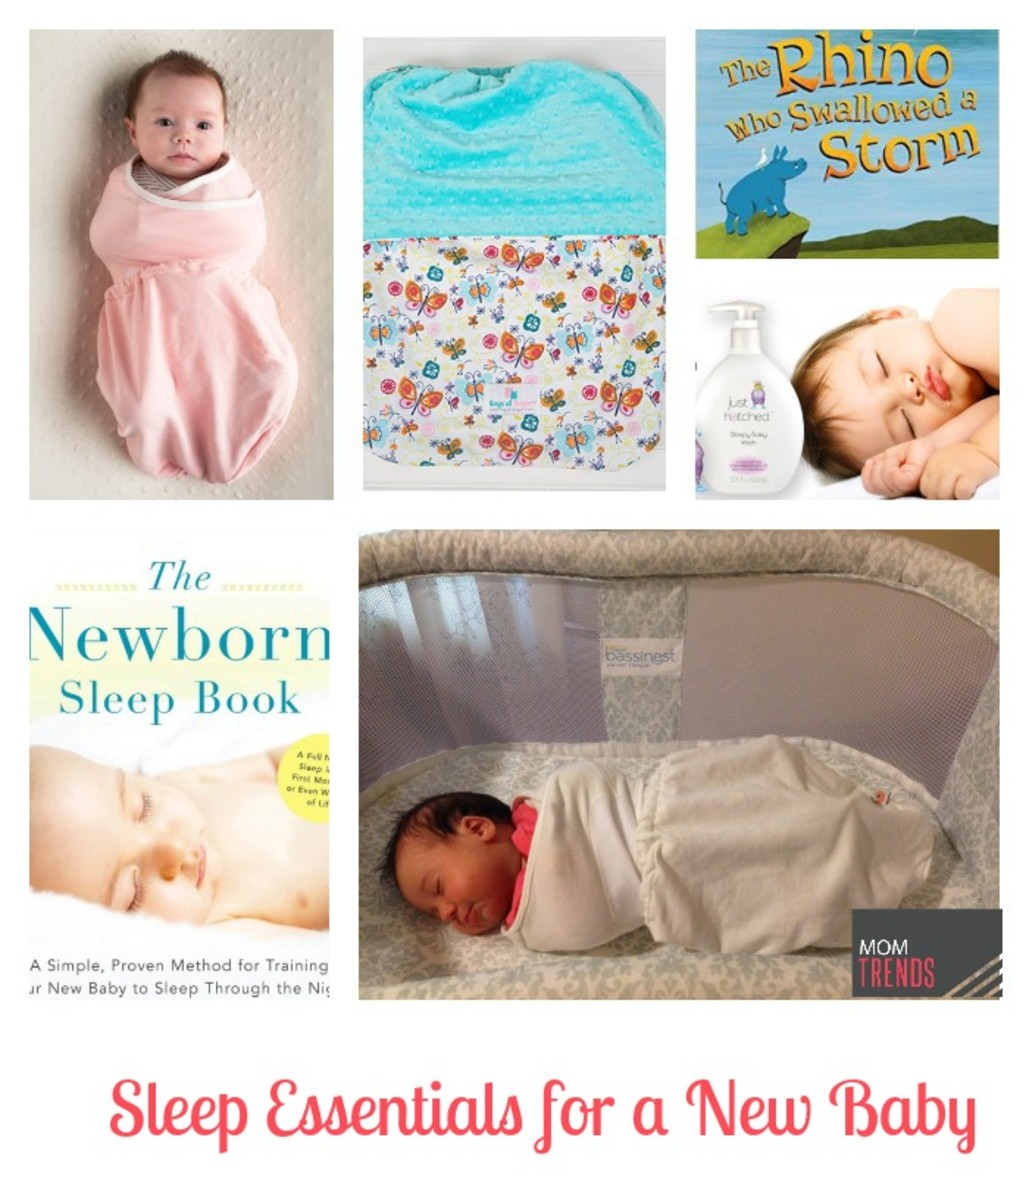 Sleep Essentials for a New Baby